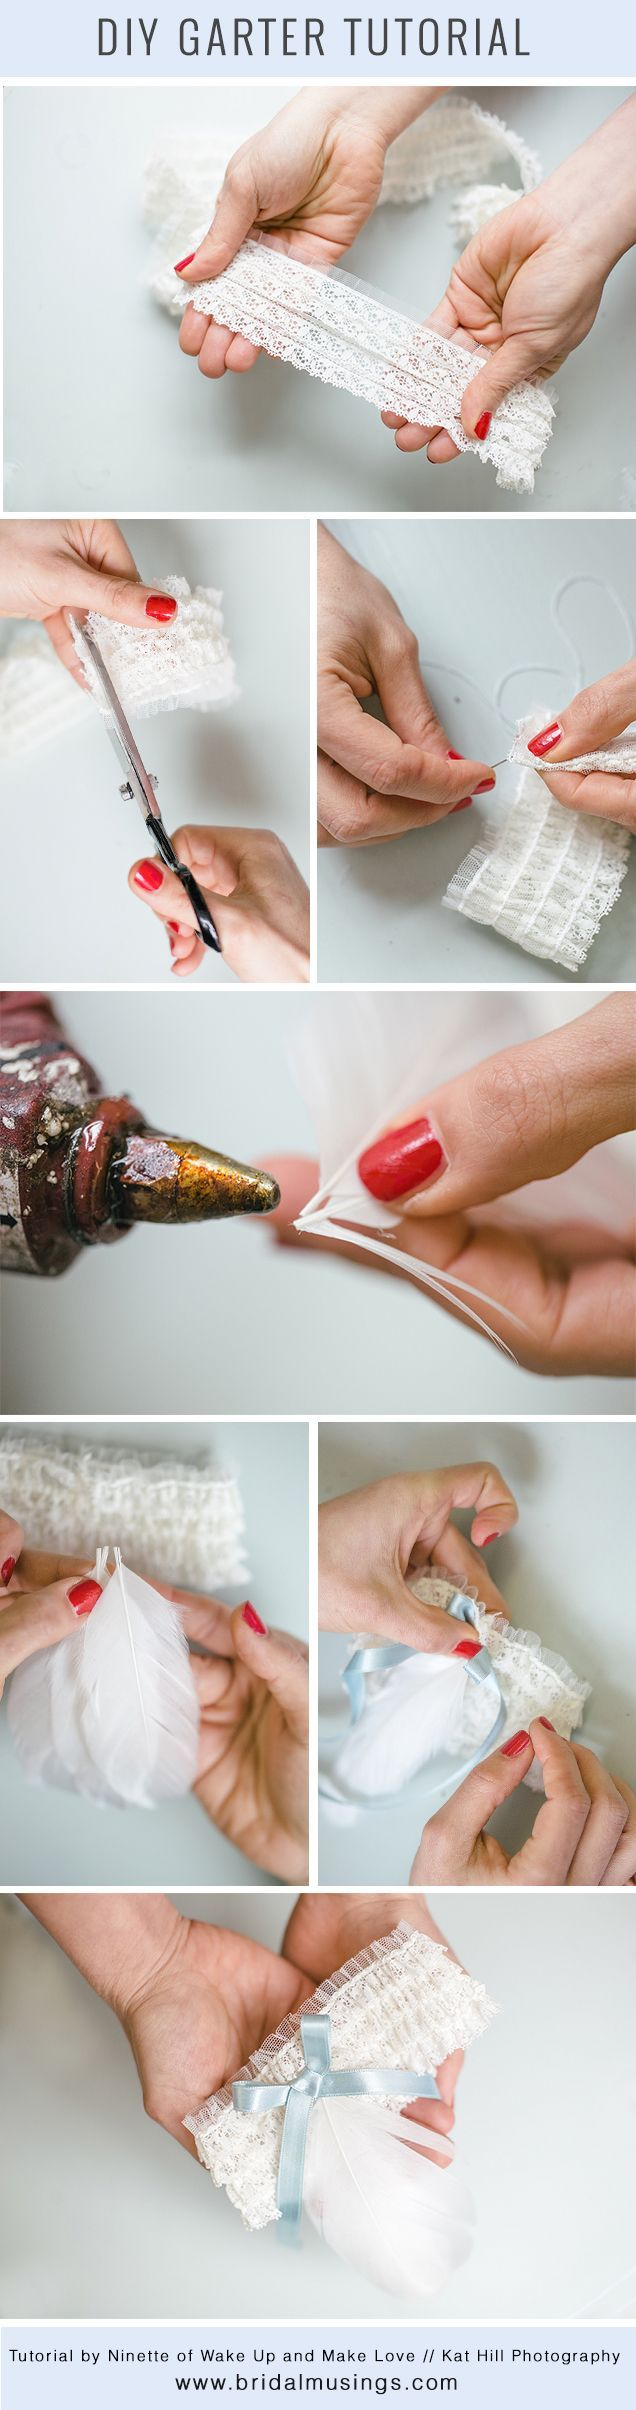 Make Your Own Garter DIY Tutorial // Kat Hill Photography